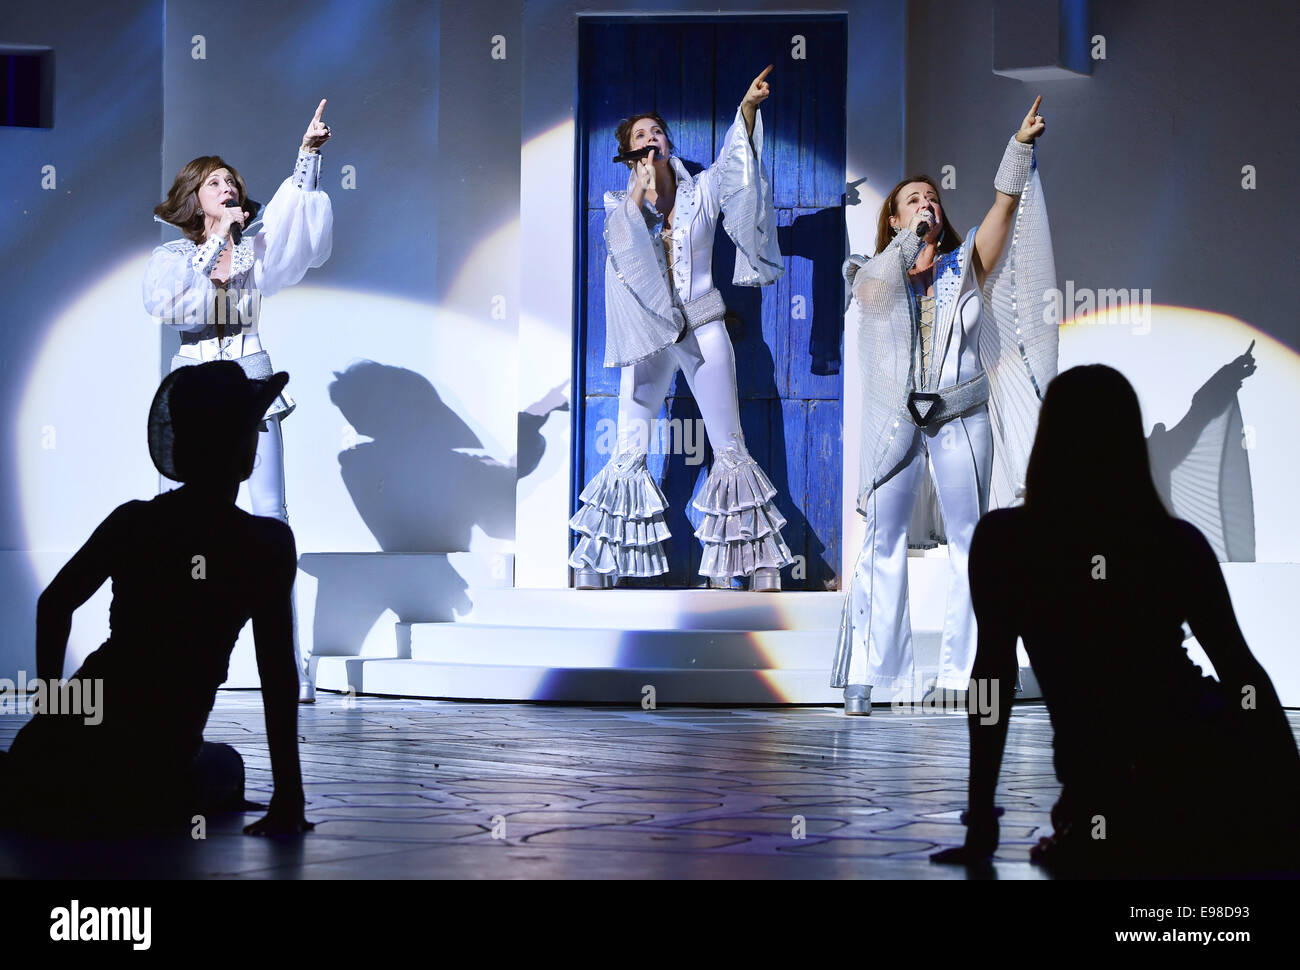 Berlin, Germany. 21st Oct, 2014. Performers Betty Vermeulen (L-R) as Tanya, Sabine Mayer as Donna, and Barbara Rauenegger - Stock Image